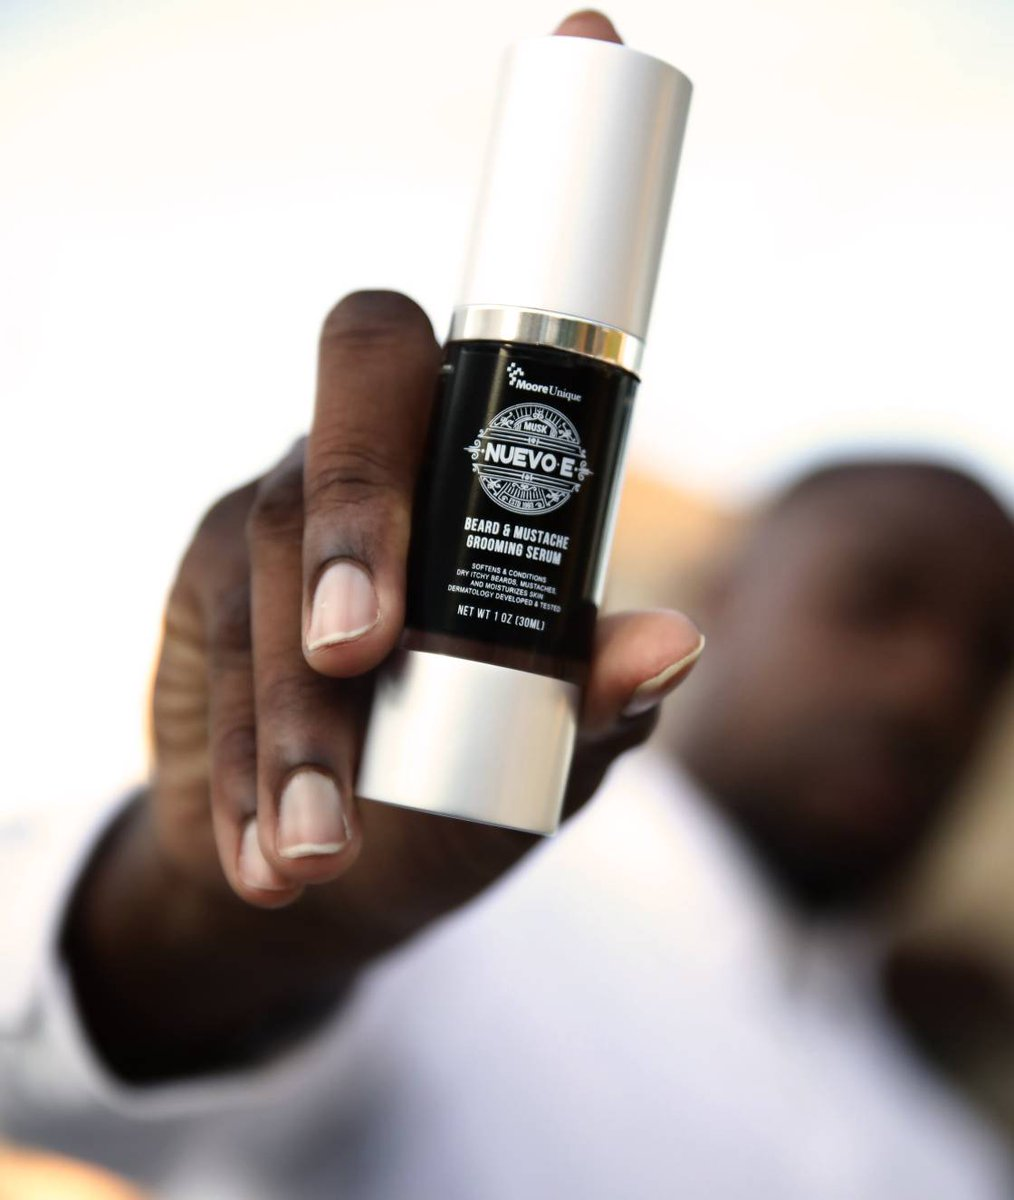 Finally! A #beardserum tailor-made for men of all skin types. Introducing Nuevo-E Beard Grooming Serum. http://bit.ly/nuevo-epic.twitter.com/AOYrtLLxpL